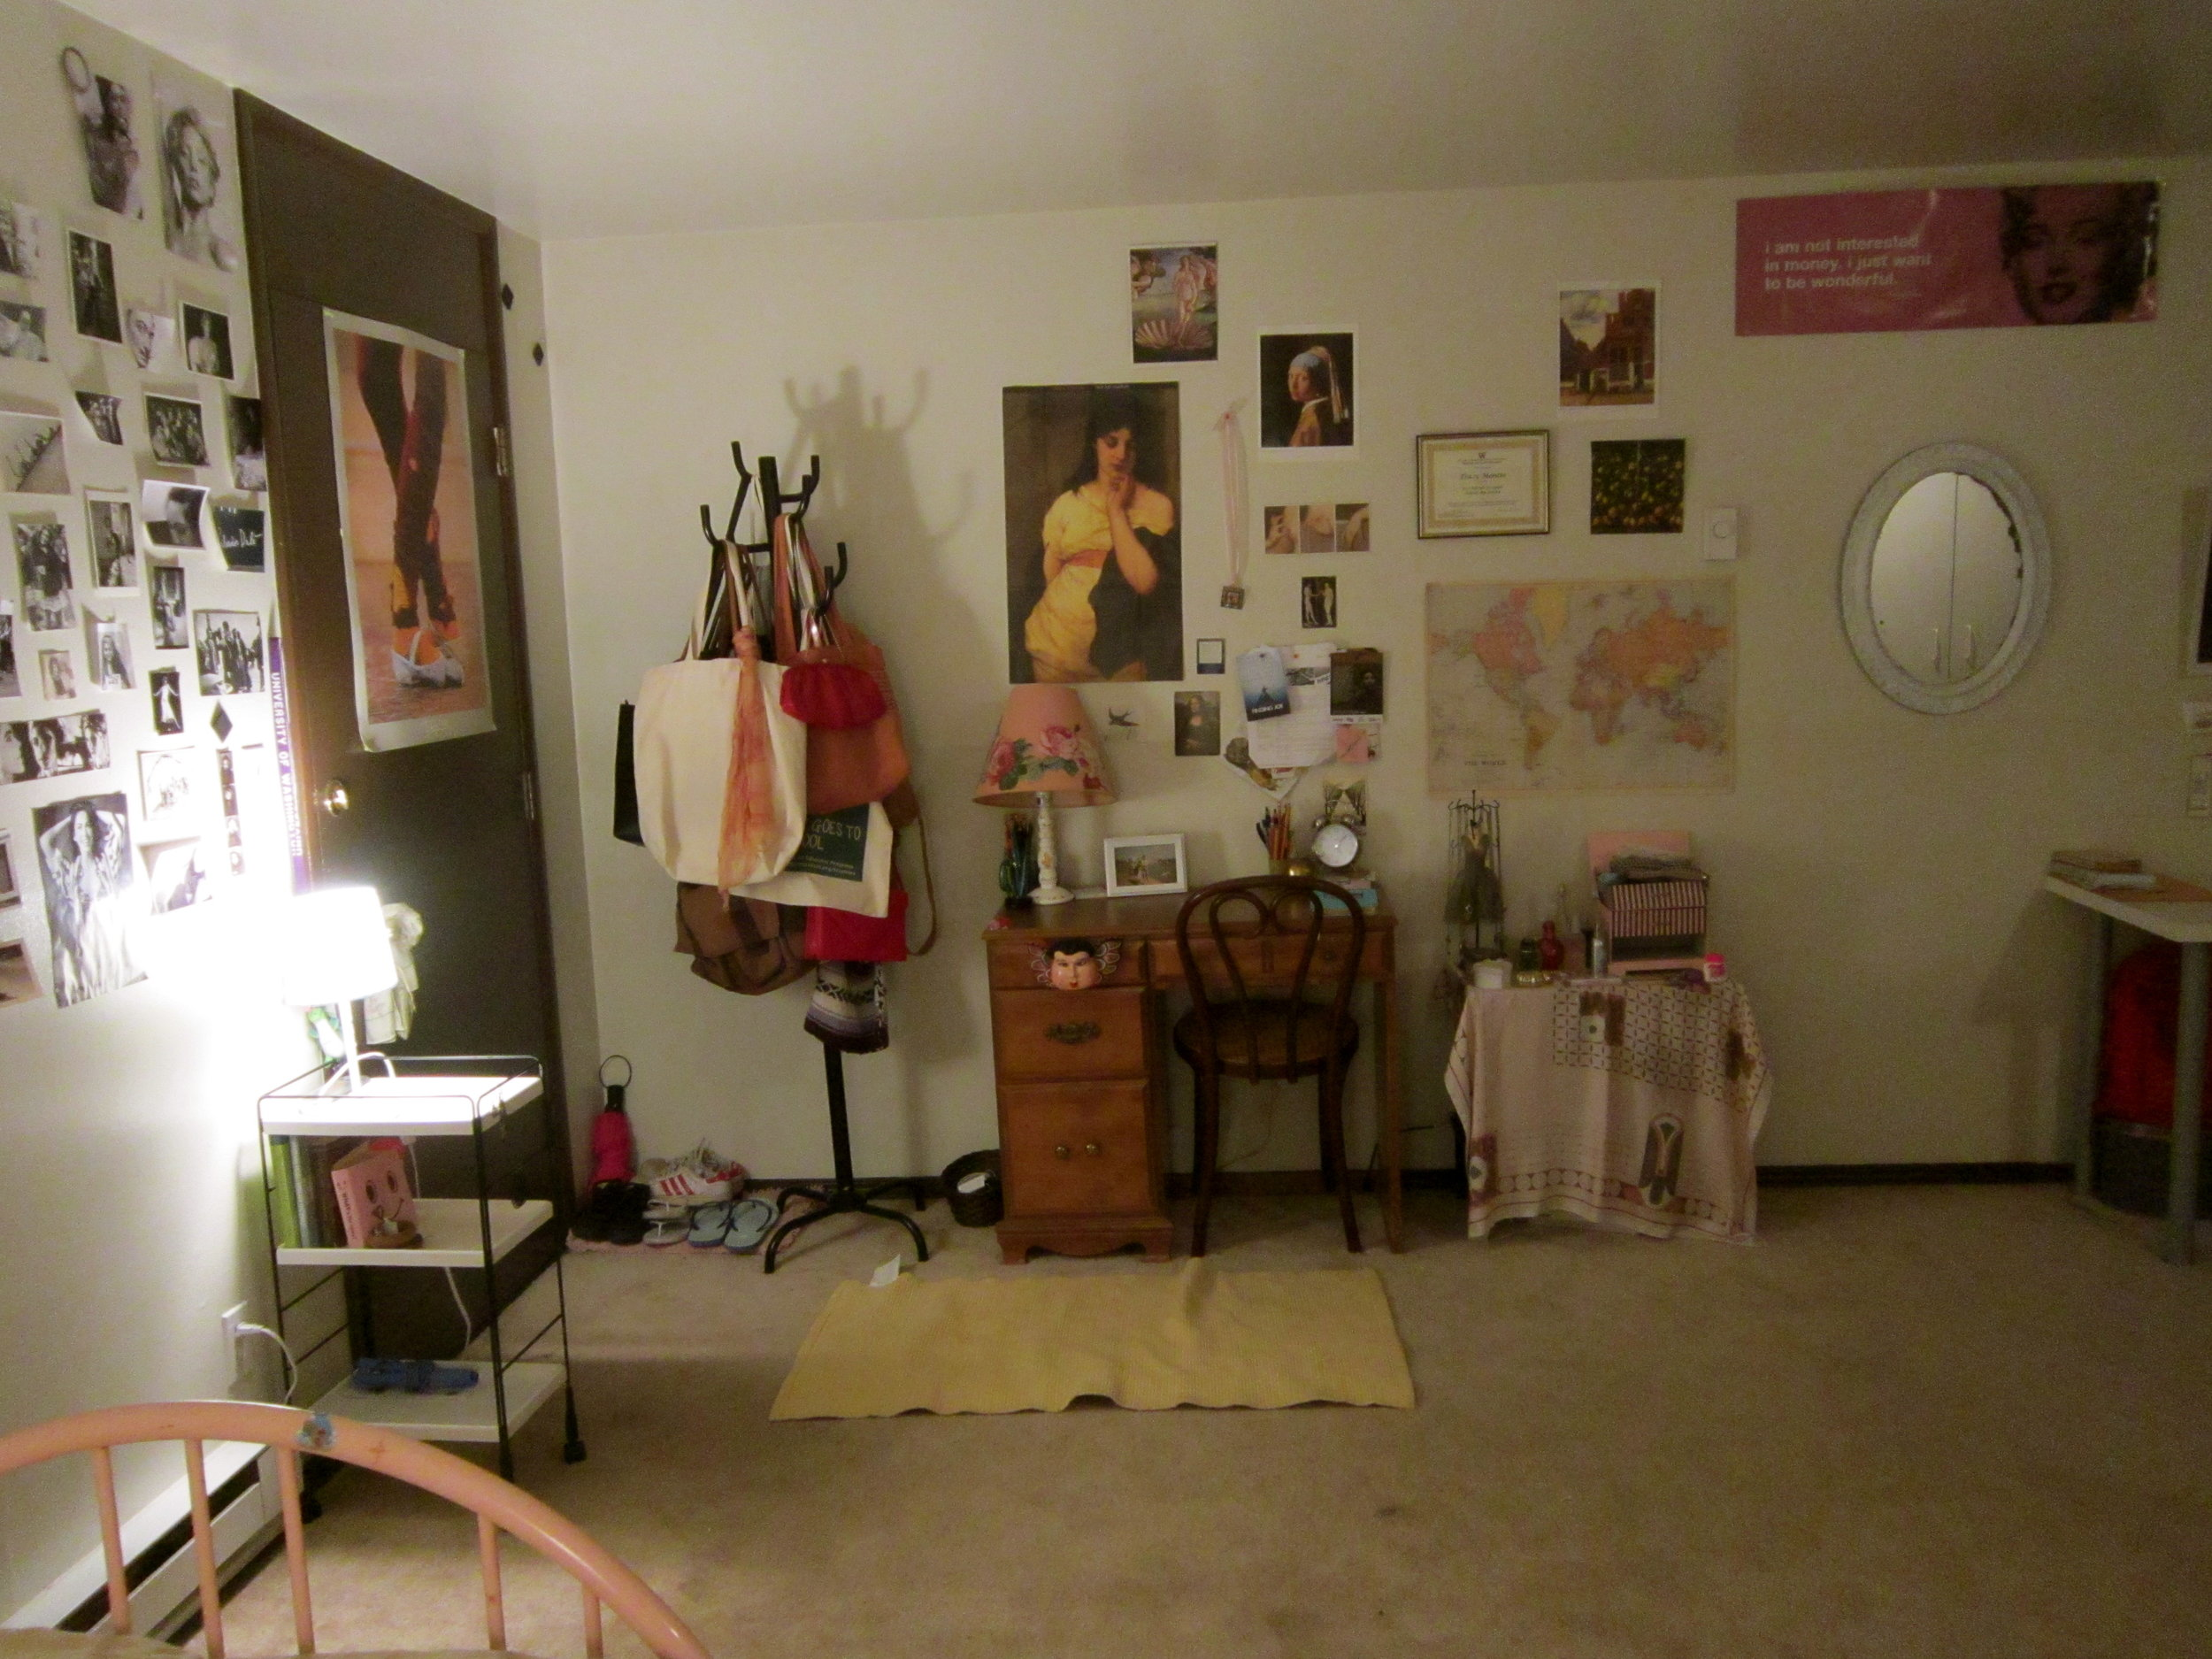 My first studio. This was in Seattle in 2011, I was in my sophomore year in college. I lived alone and it was amazing.